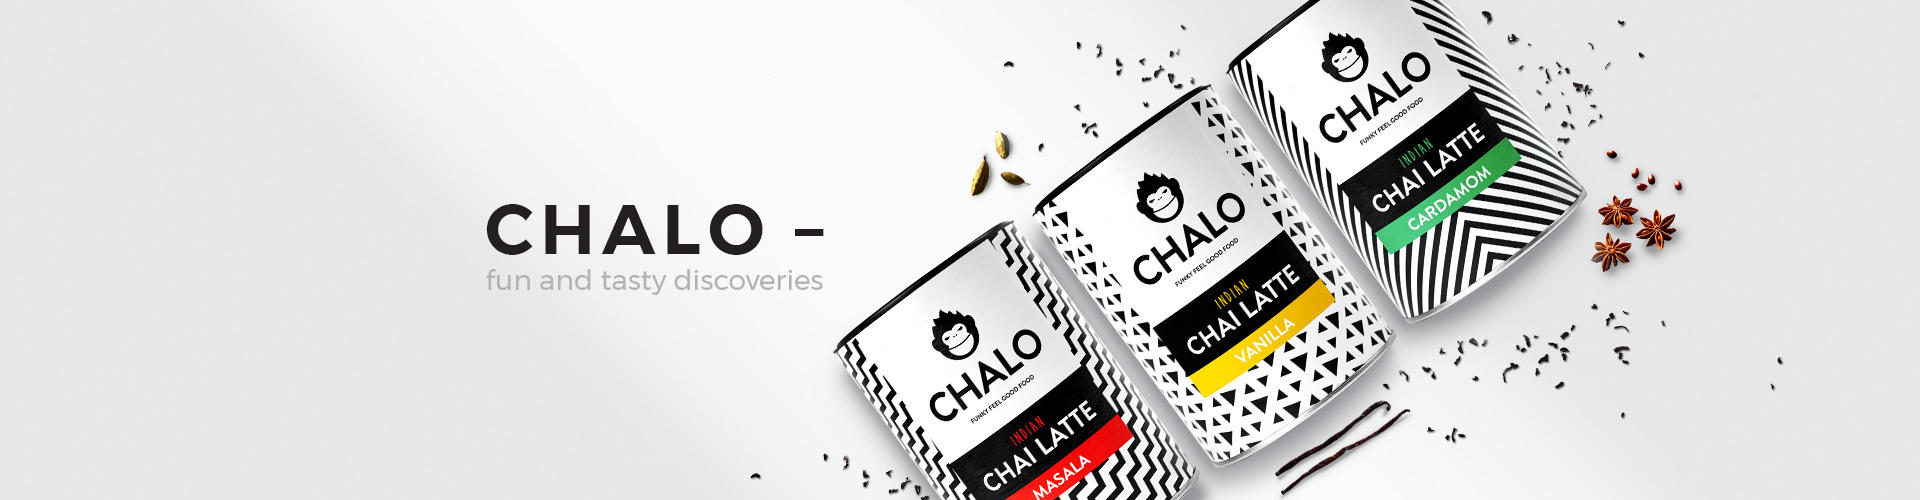 Chalo – fun and tasty discoveries